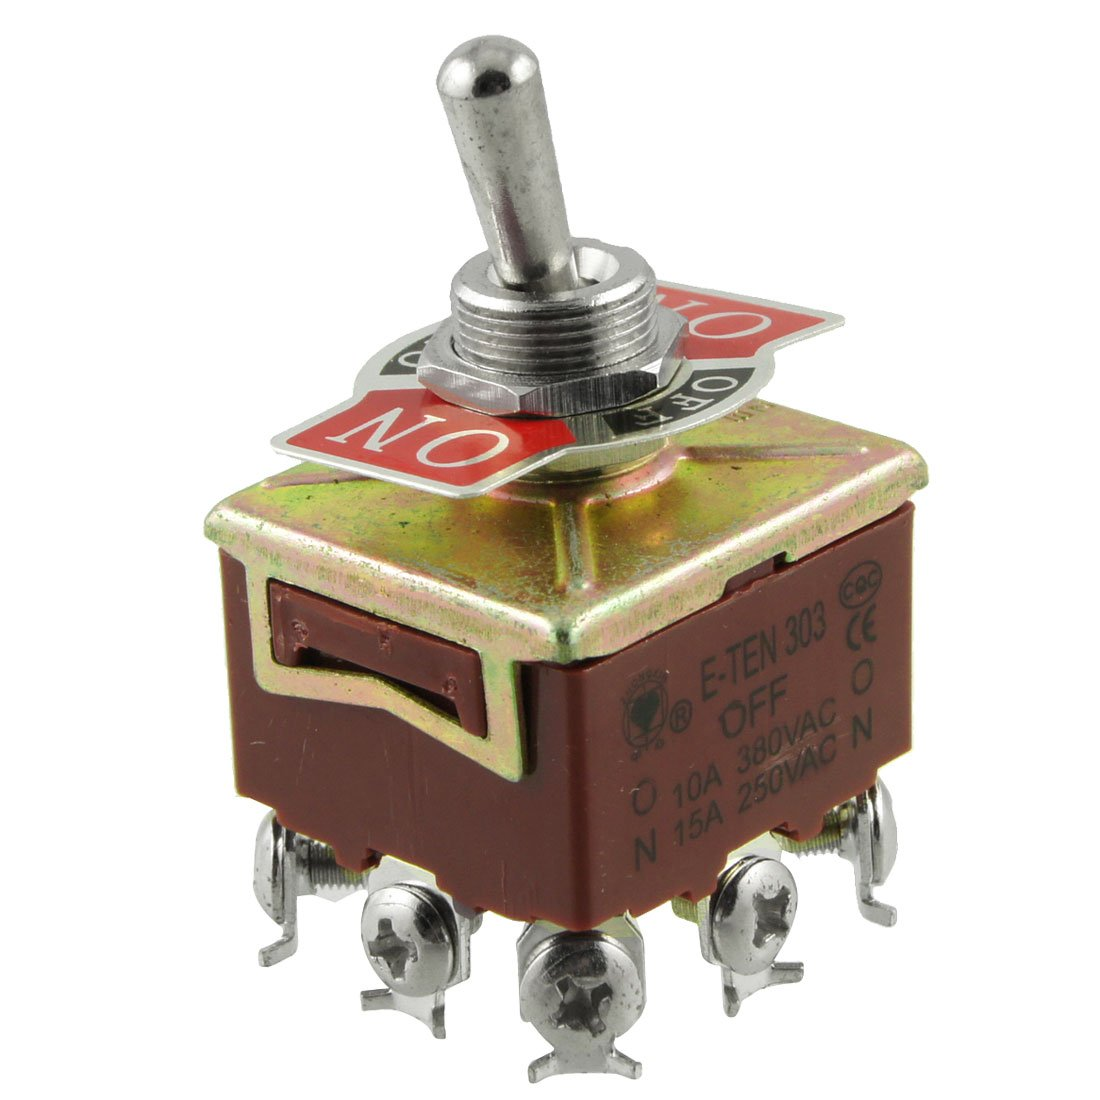 Uxcell A12031300ux0399 Toggle Switch 3pdt On Off 3 Postion 9 Wiring Diagram Screw Terminals Ac 250v 15 Amp Industrial Scientific